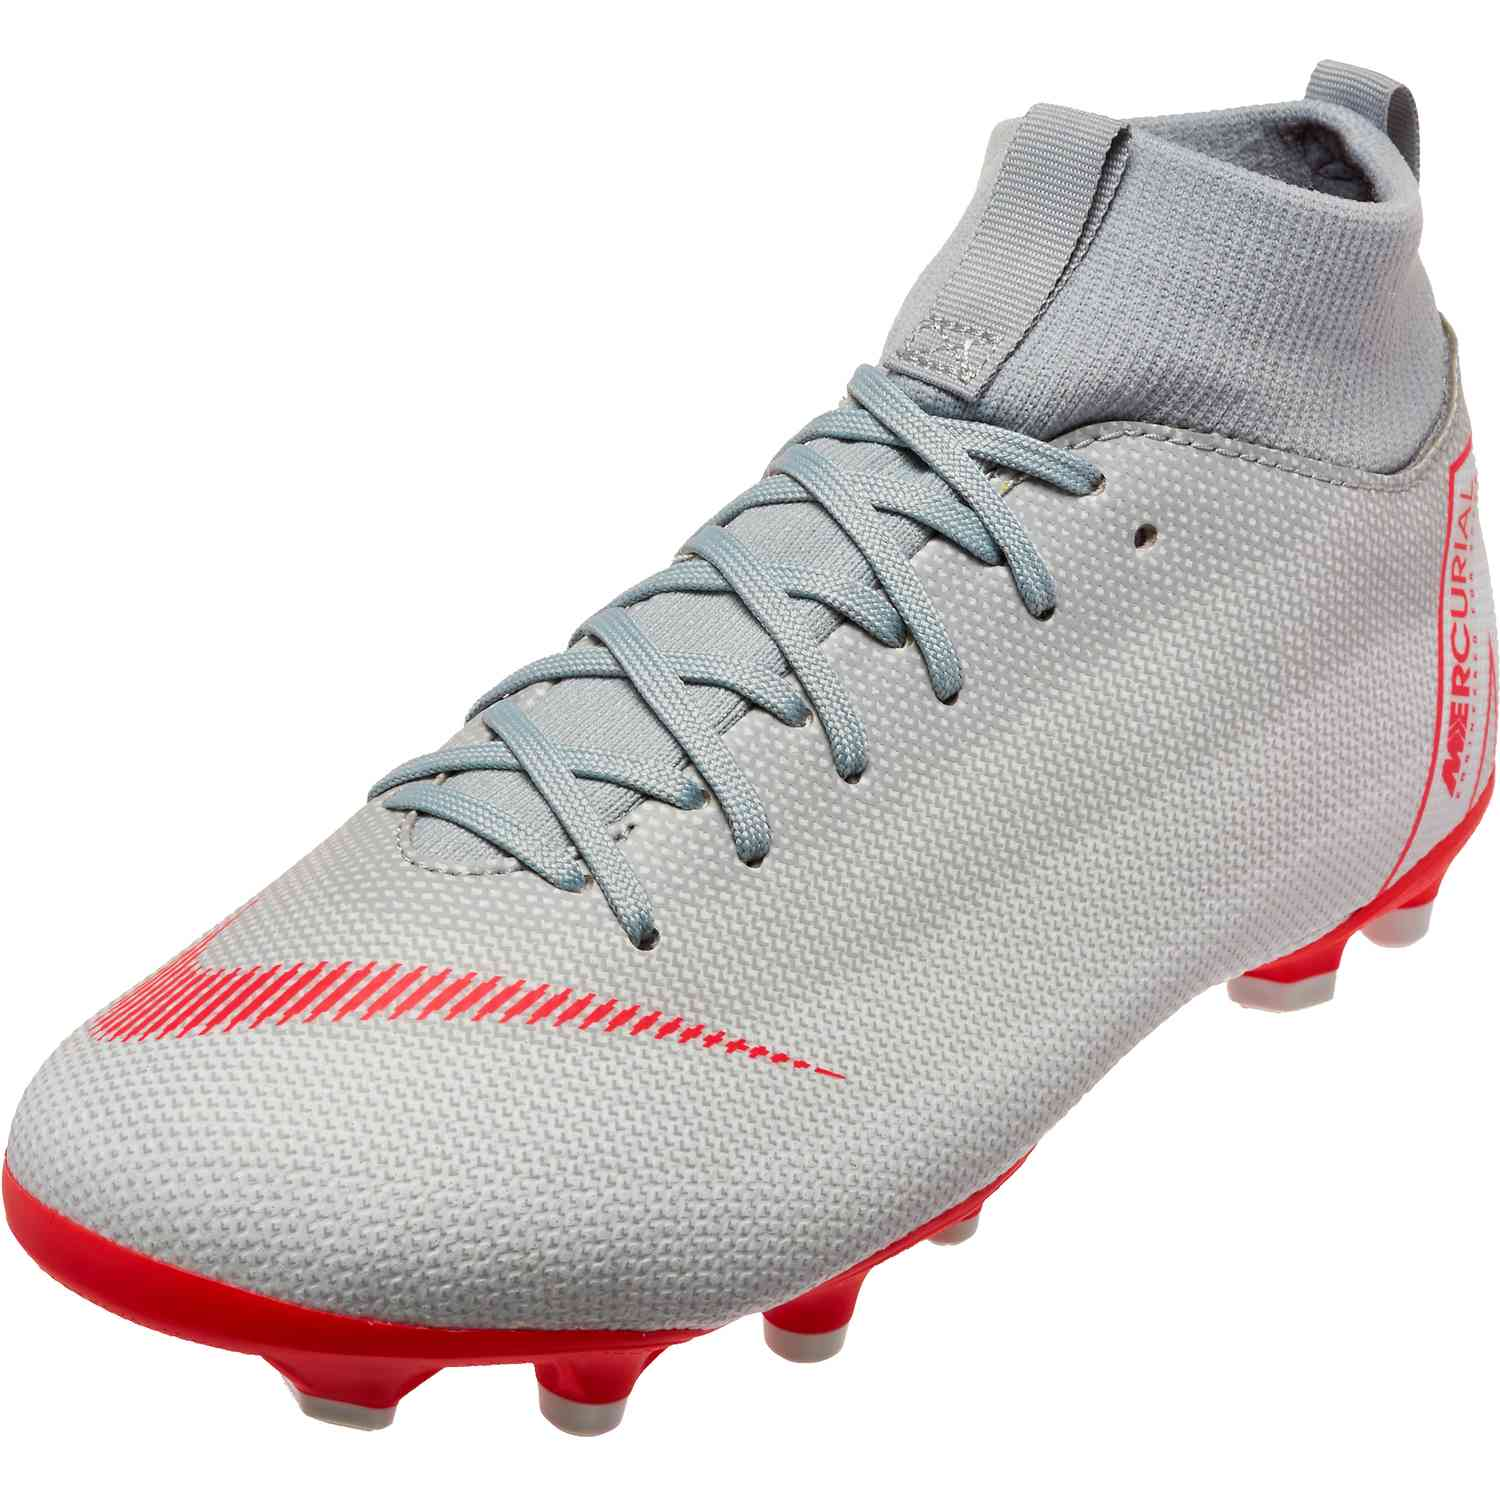 brand new f2db8 c02c6 Youth Nike Mercurial Superfly 6 Academy MG – Wolf Grey Light Crimson Pure  Platinum